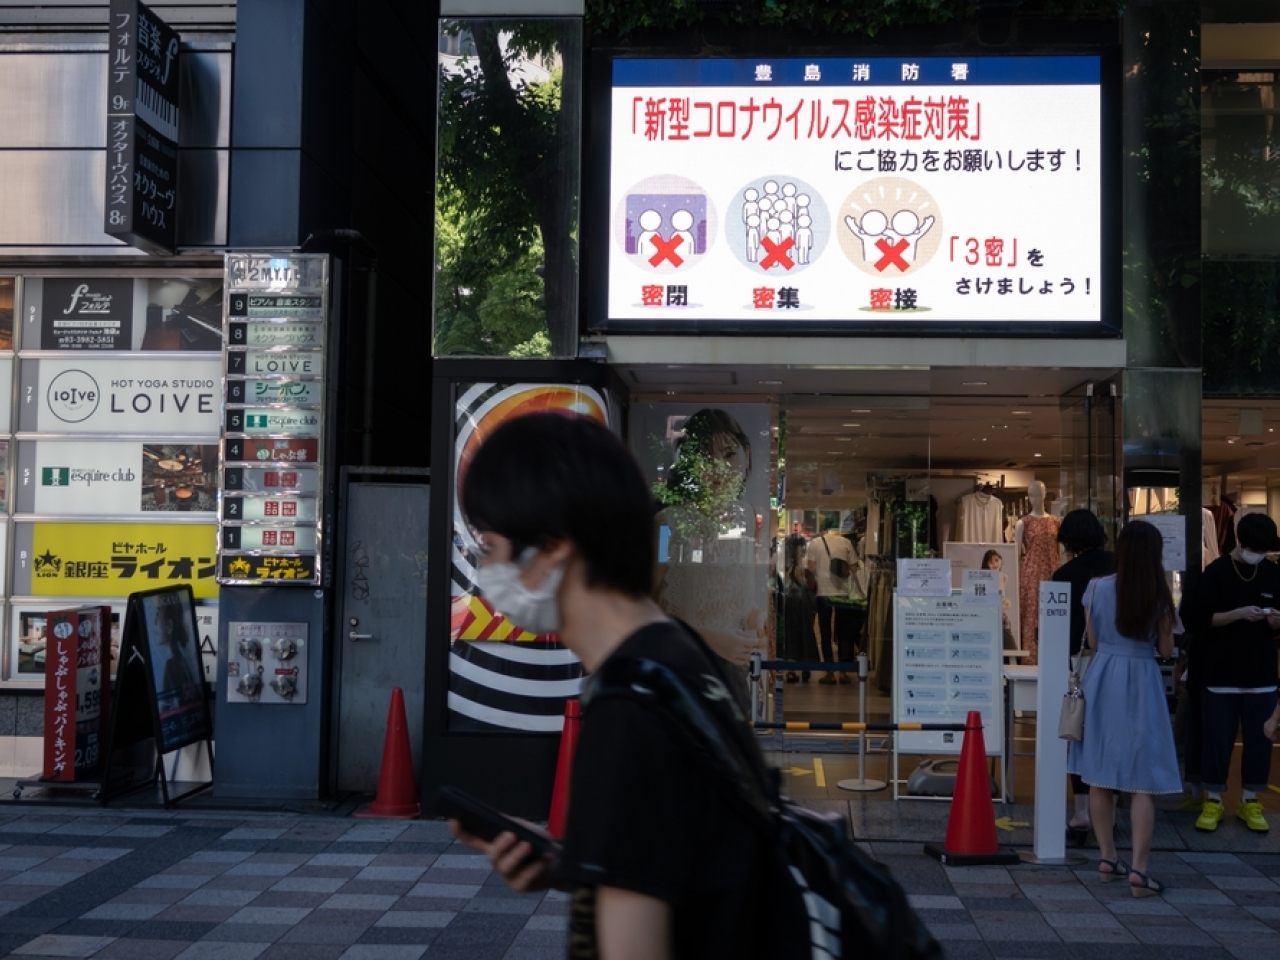 Under the state of emergency in Tokyo and other urban areas, restaurants, bars, and karaoke parlours serving alcohol are required to close. File image: Shutterstock